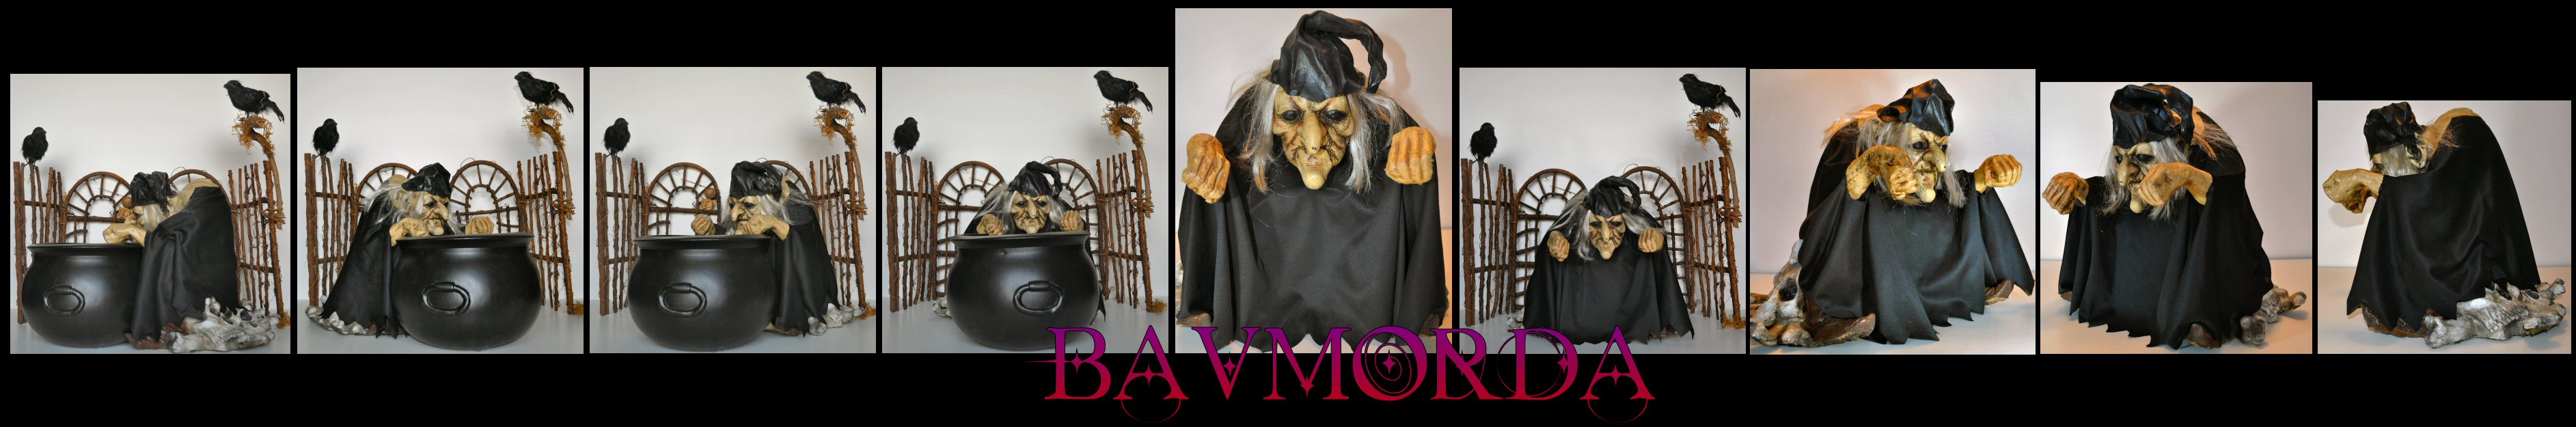 Bavmorda package preview by Aegean-Prince